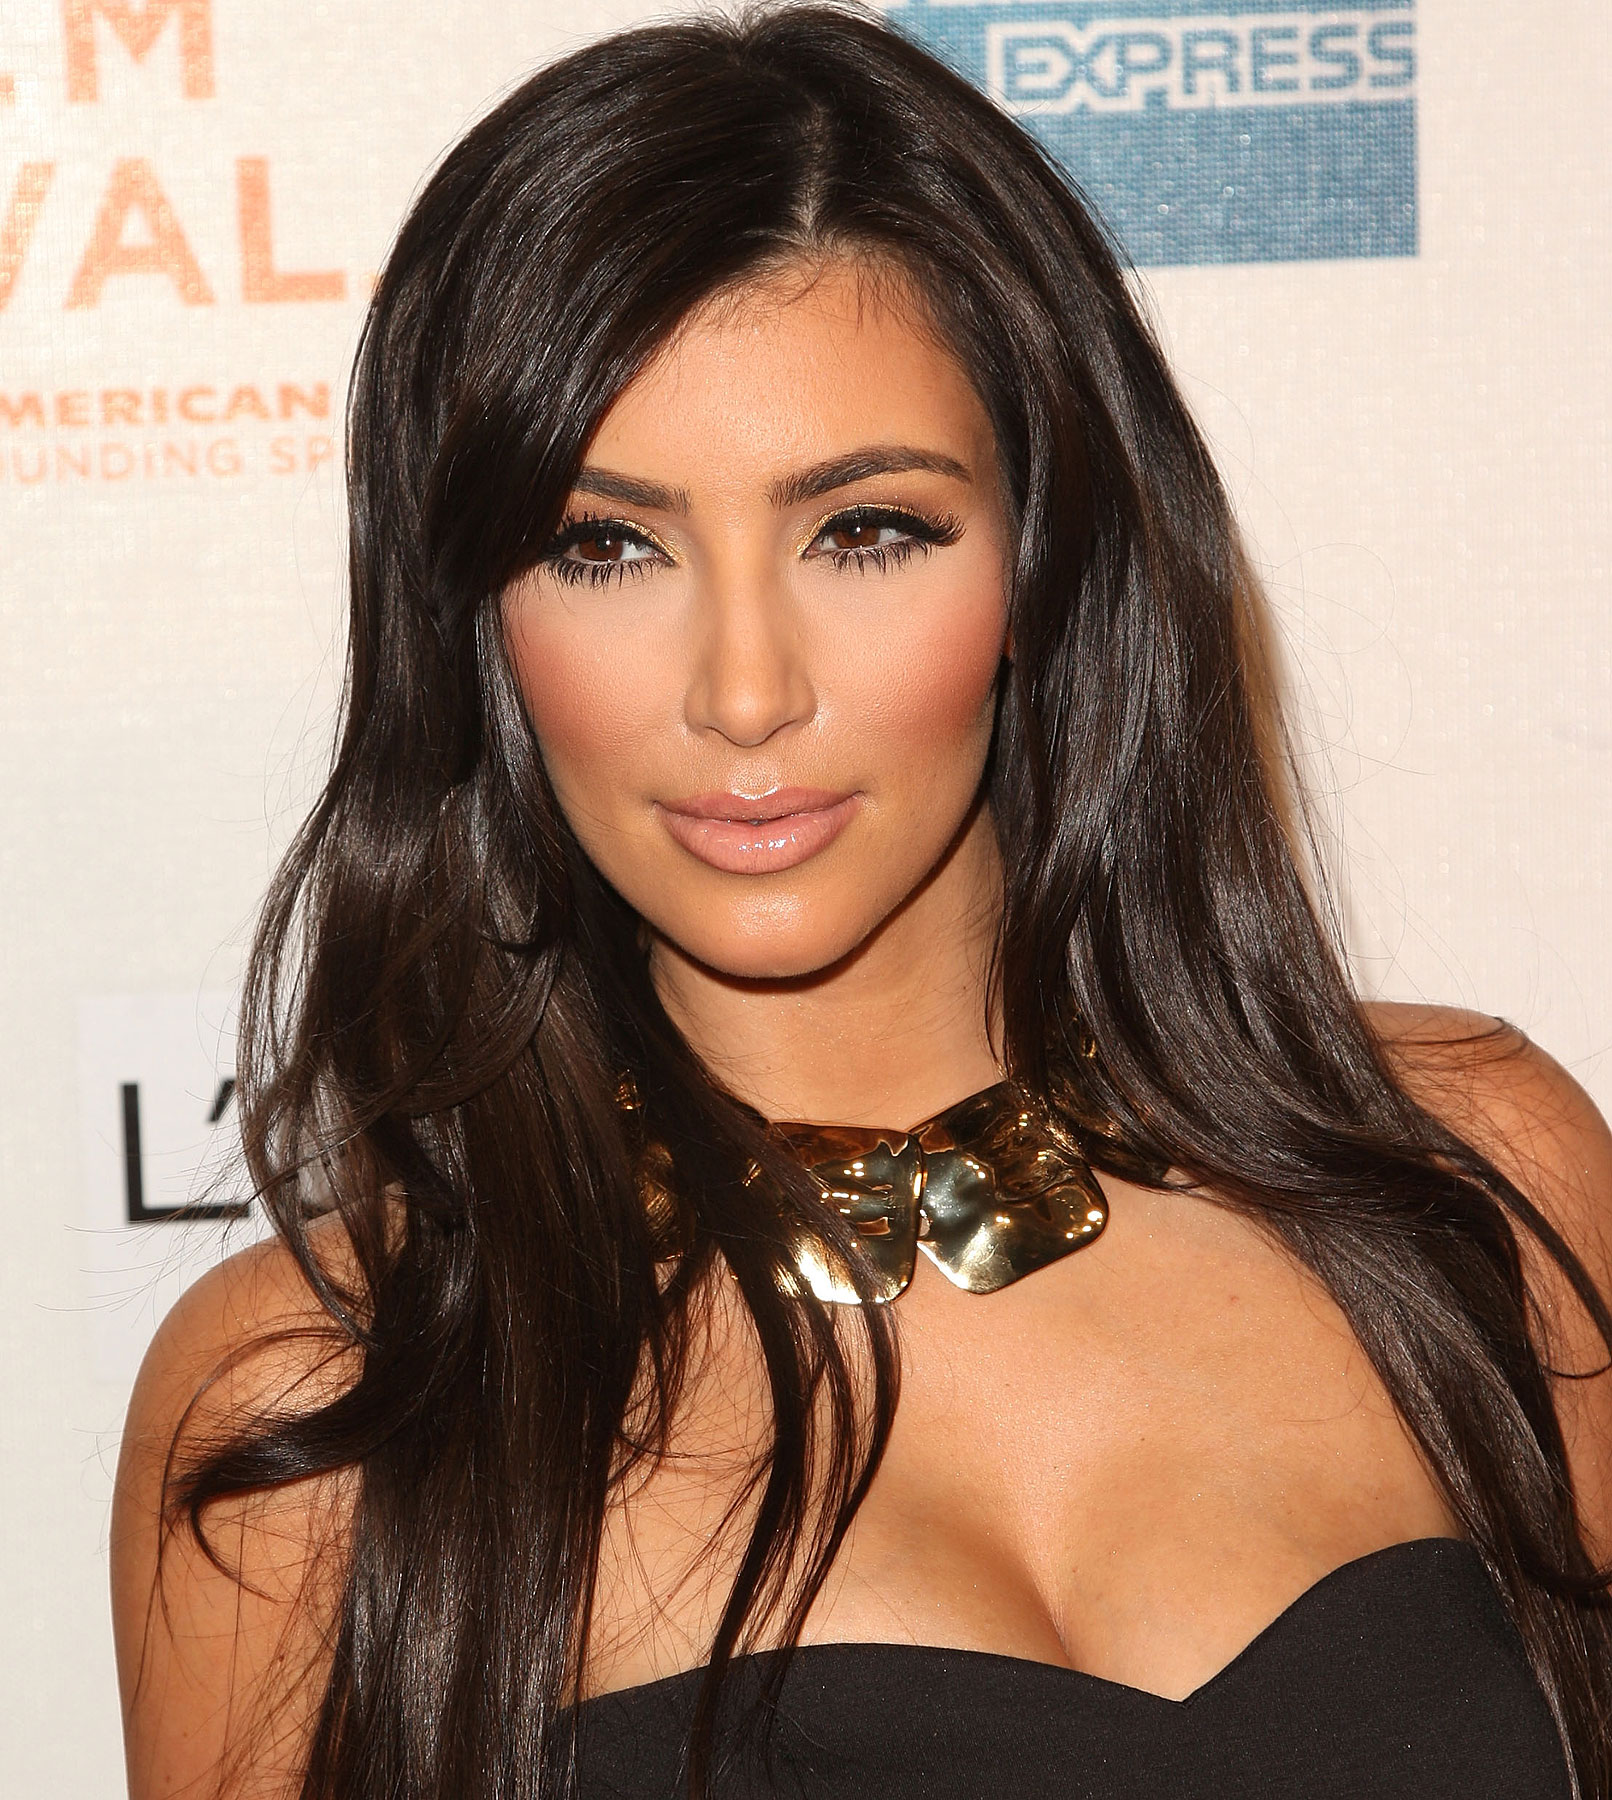 Calling all Girls and Drag Queens for the Kim Kardashian Look-a-Like Contest!